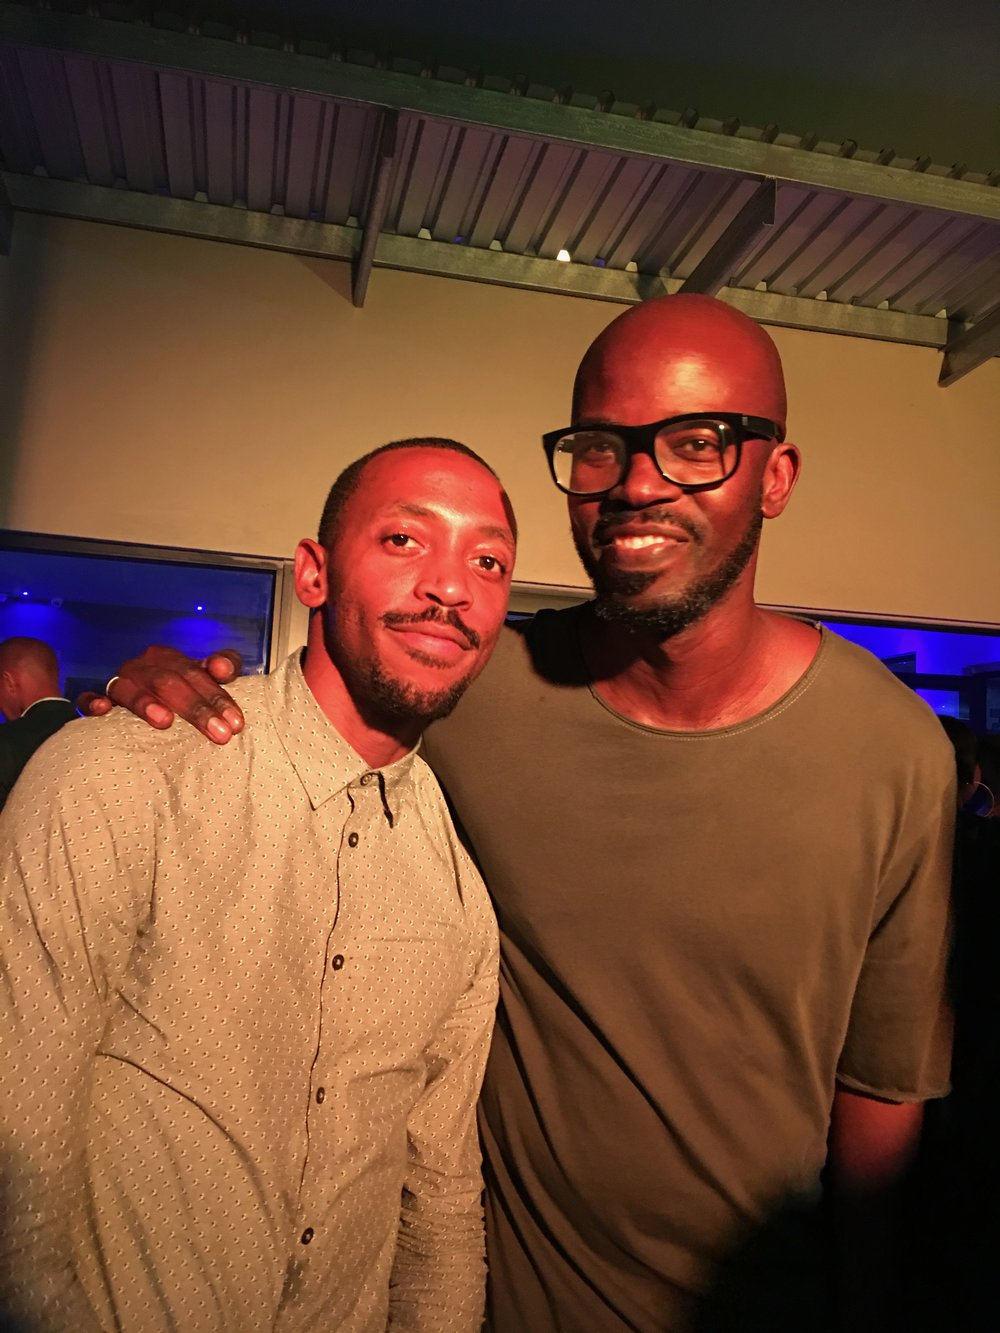 South Africa's top DJ, Black Coffee